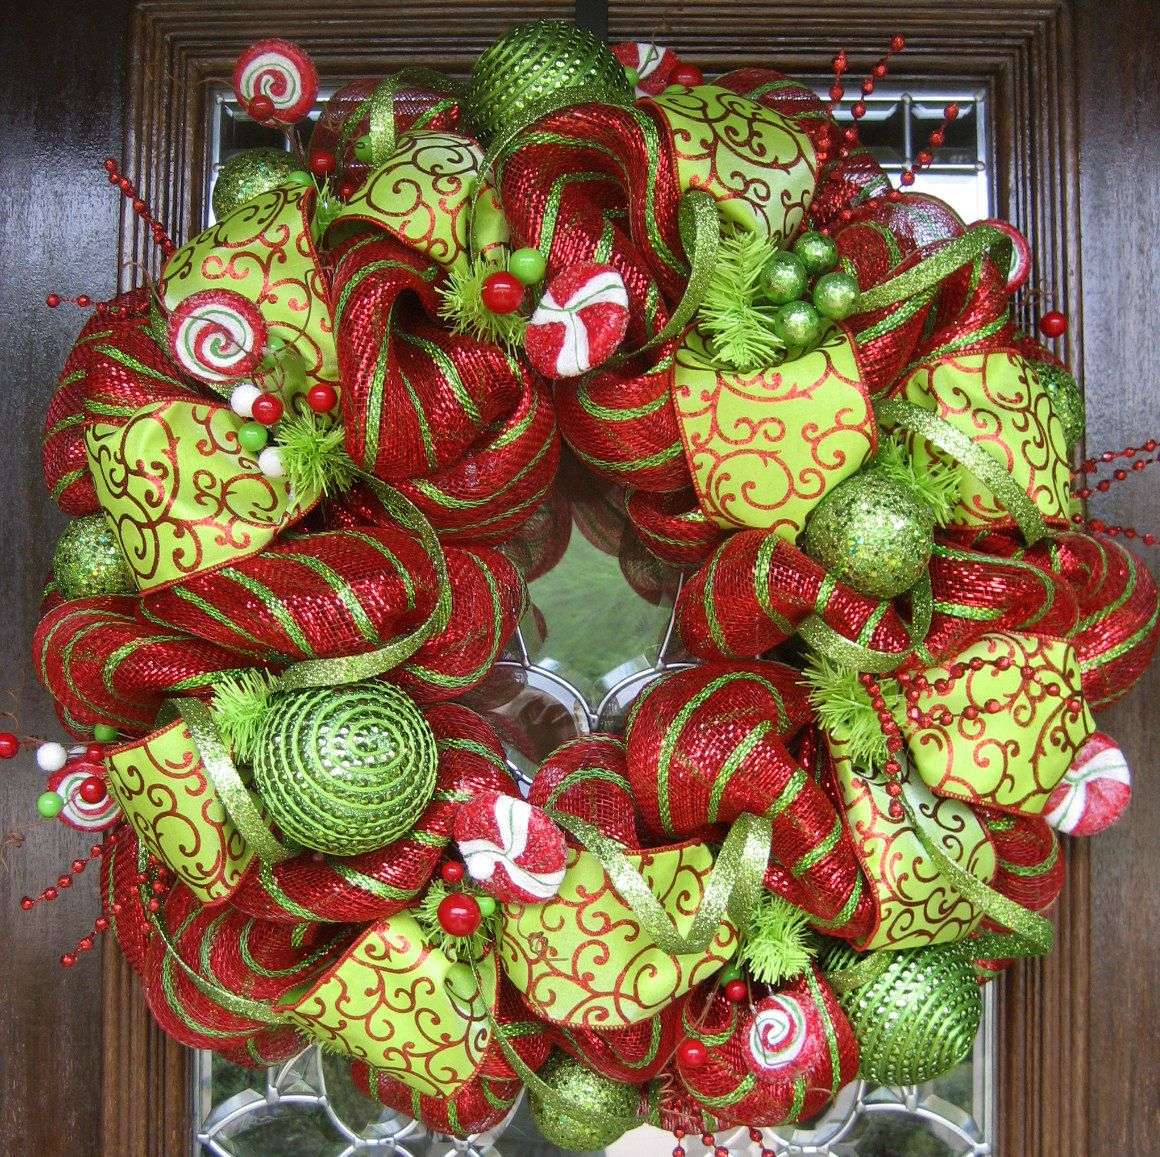 Deluxe Deco Mesh WHIMSICAL CHRISTMAS WREATH 24 By